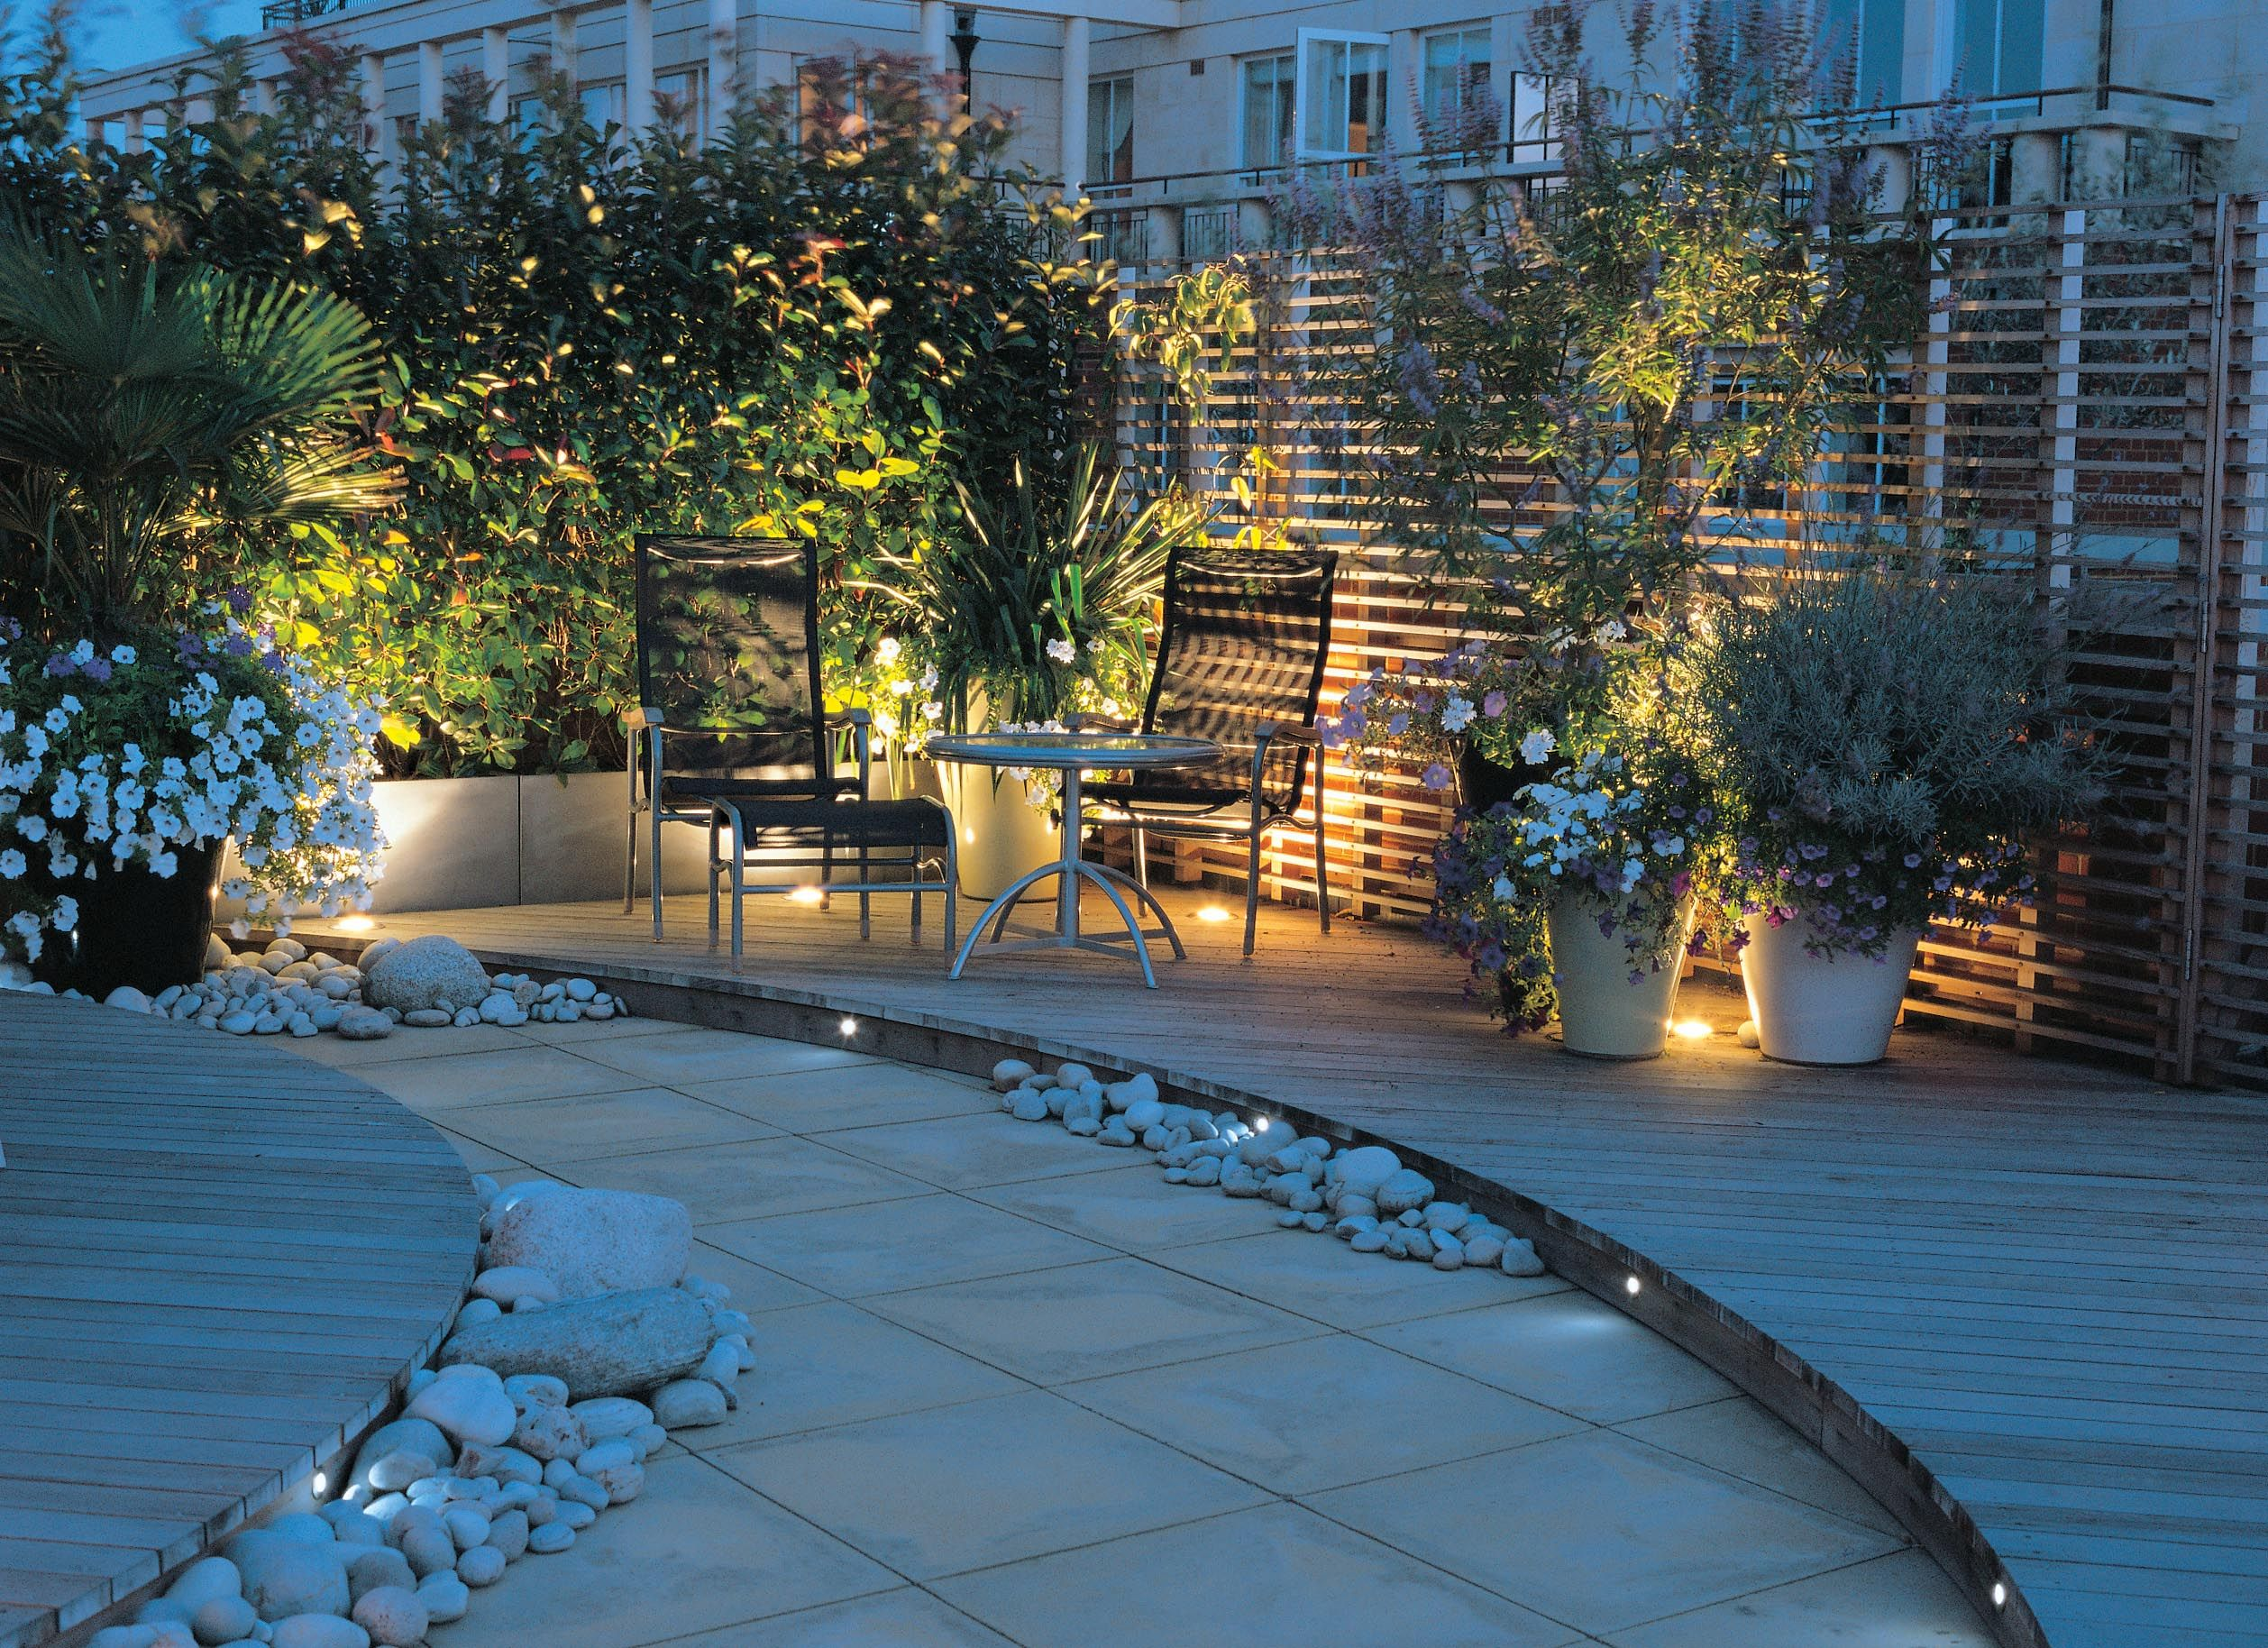 shed lighting ideas. Outdoor Lighting Ideas Will Shed Some Light On Your Own Backyard Design. Including Solar Lights